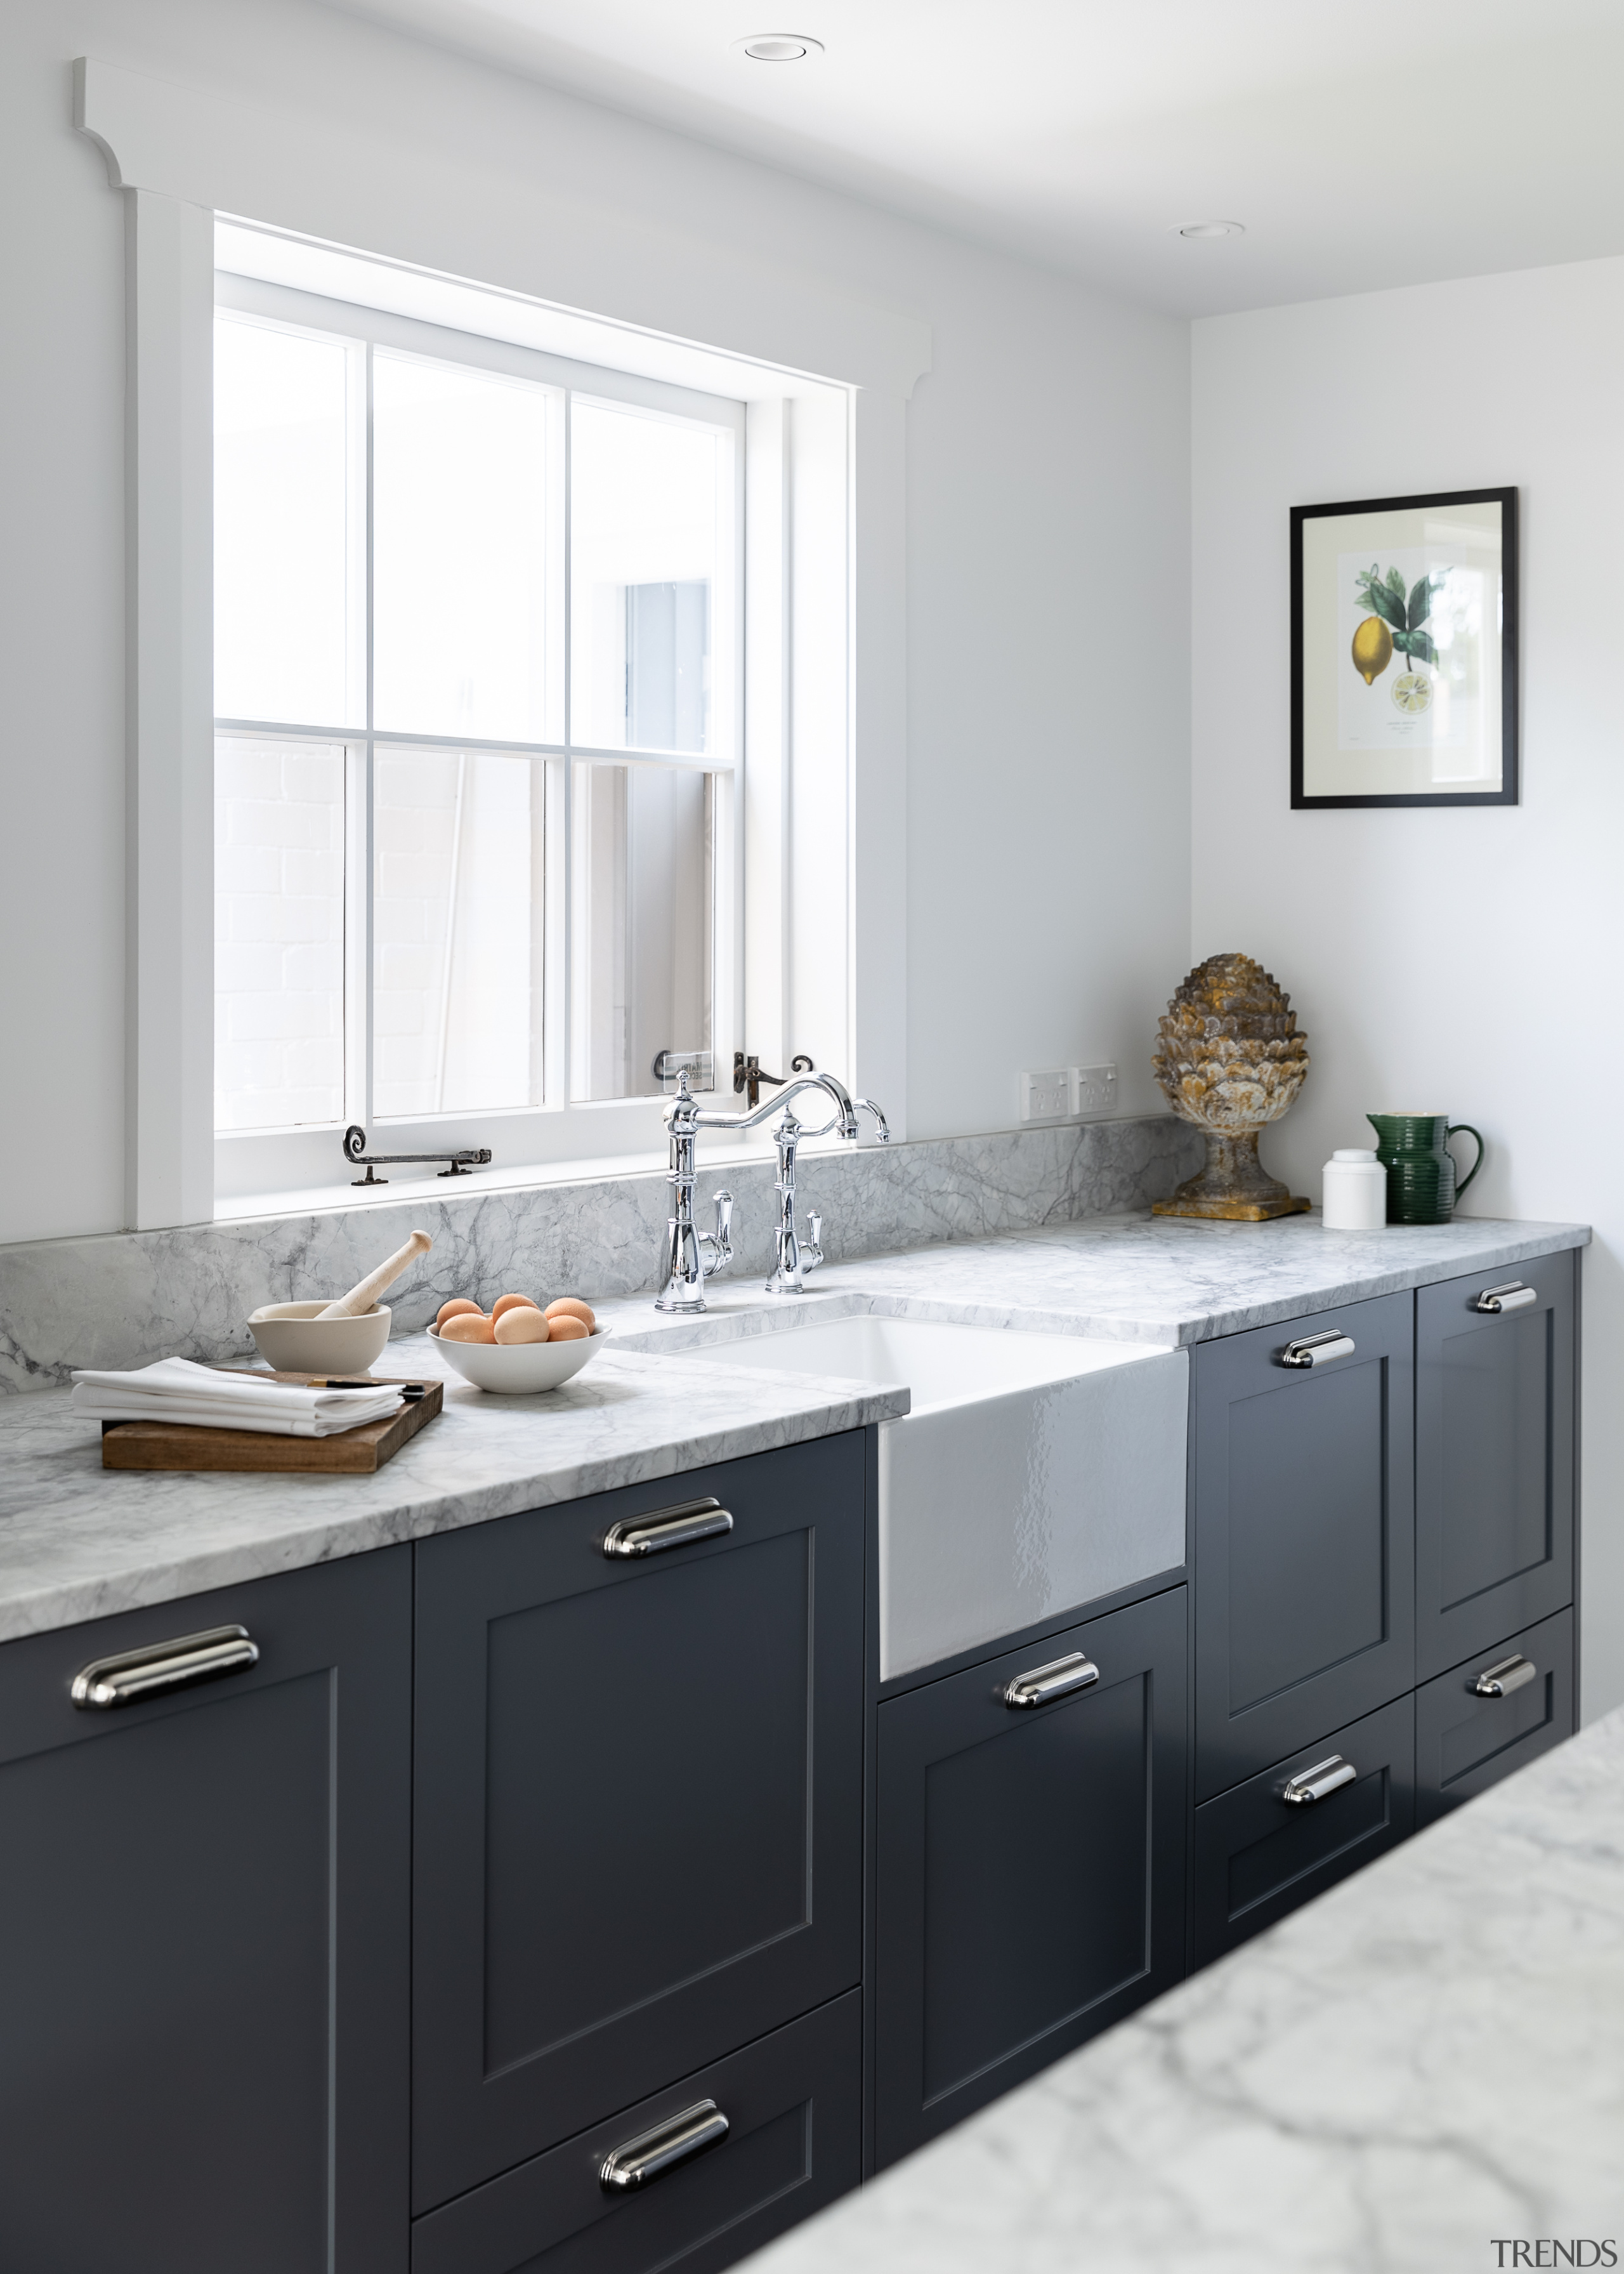 A sturdy butler's sink in the kitchen adds